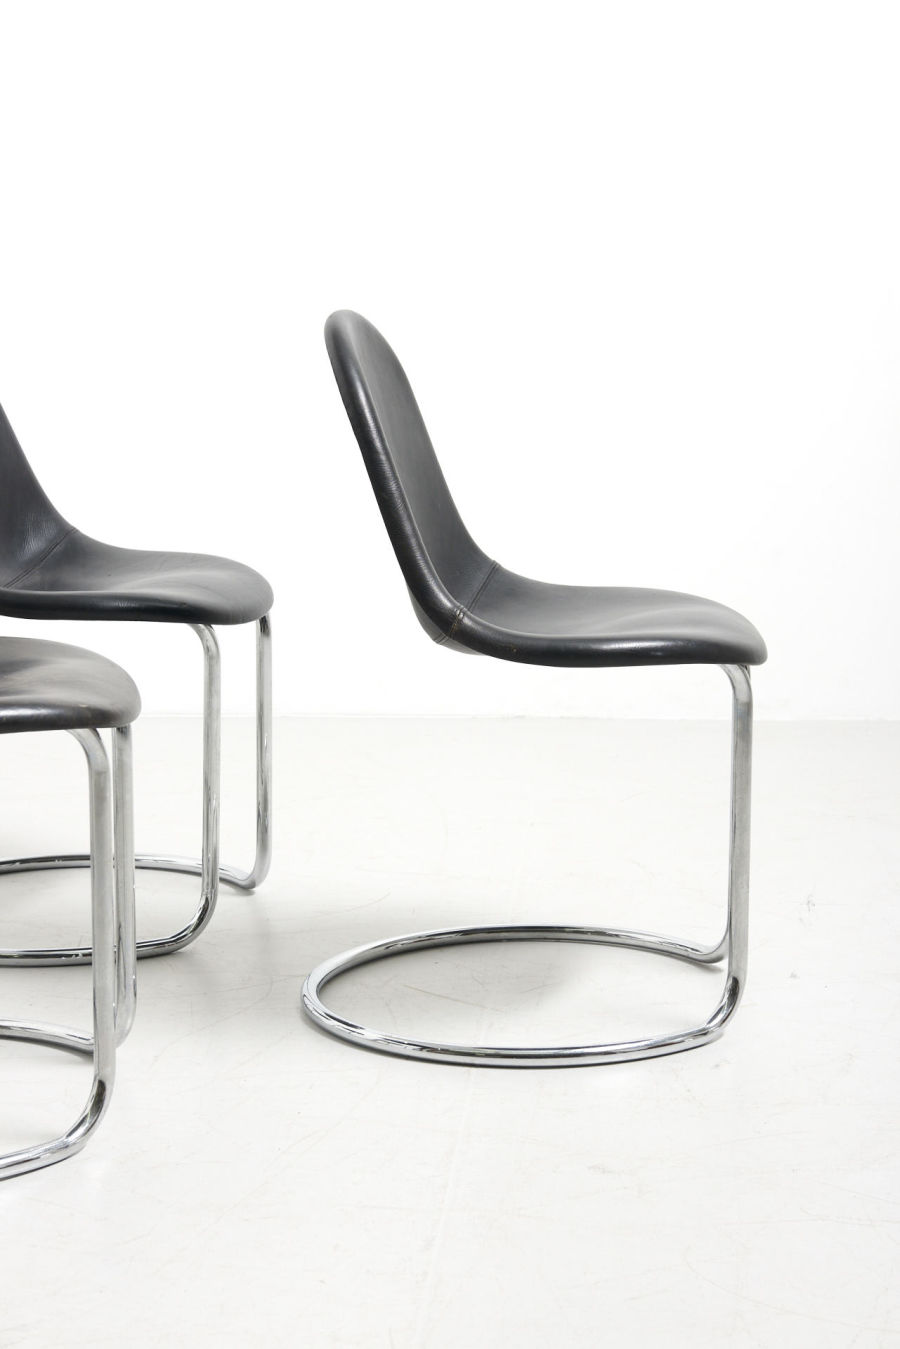 modestfurniture-vintage-2702-6-italian-dining-chairs-chrome-giotto-stoppino04